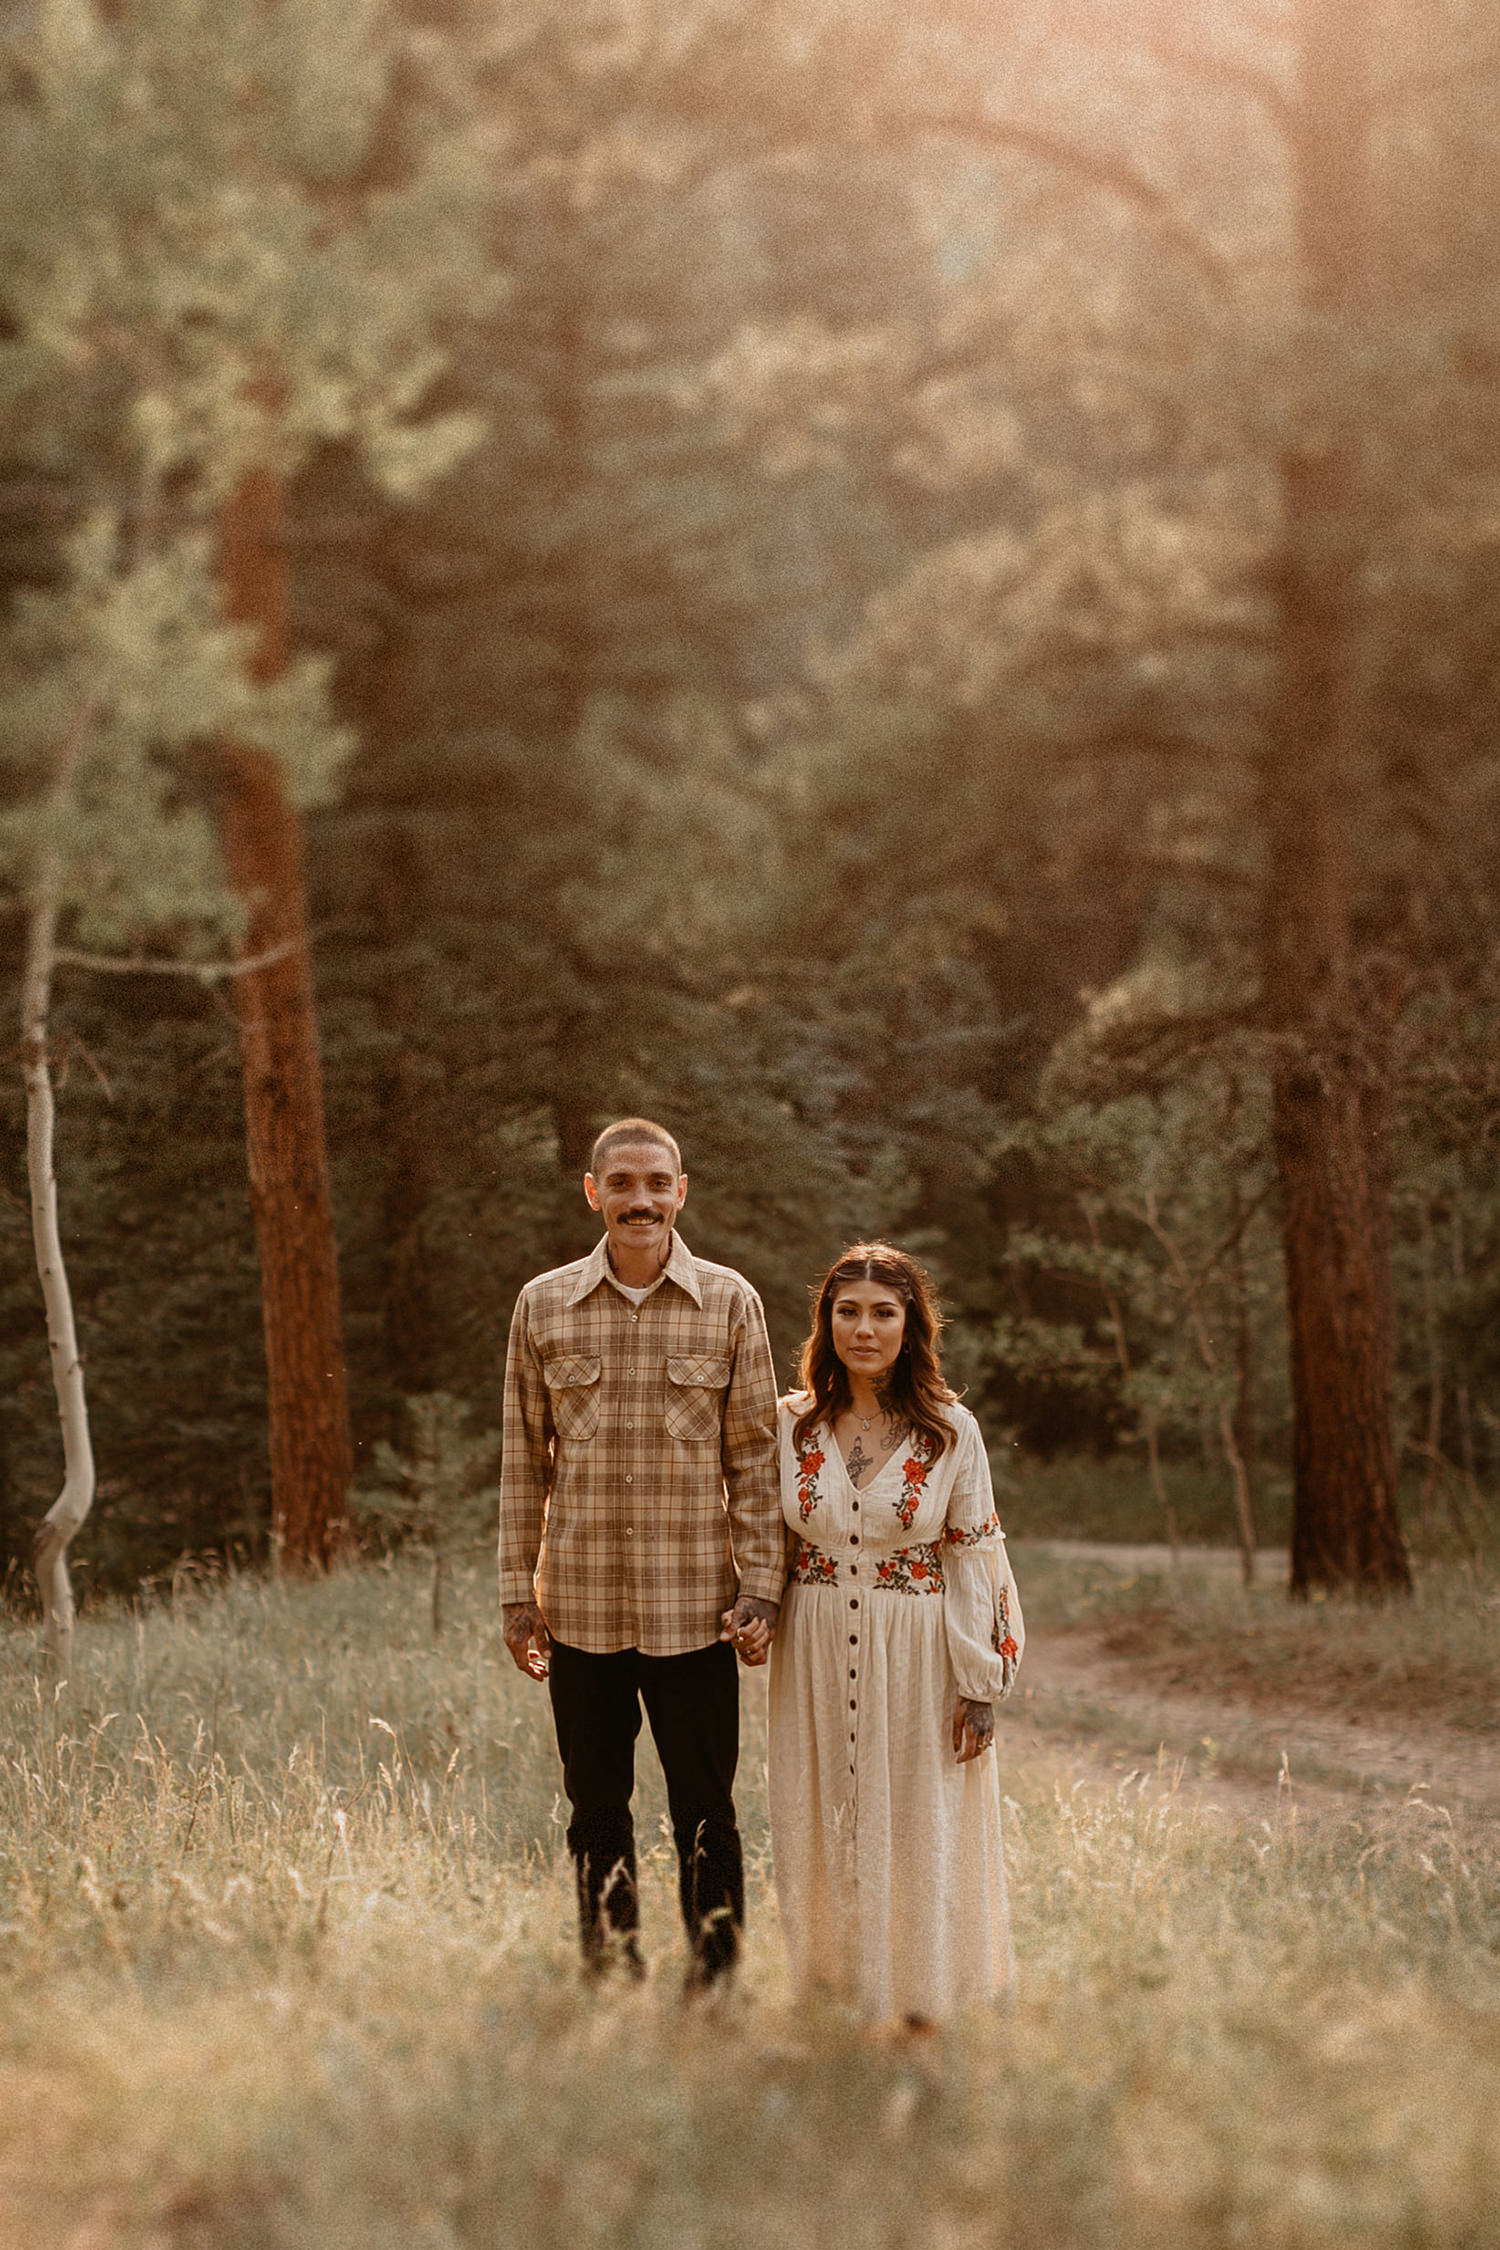 Bailey Colorado Denver Wedding Engagement Photographer Liz Osban Cheyenne Wyoming Mountain Elopement Boho bohemian vintage film tattoo non traditional tattooed rock and roll 25.jpg